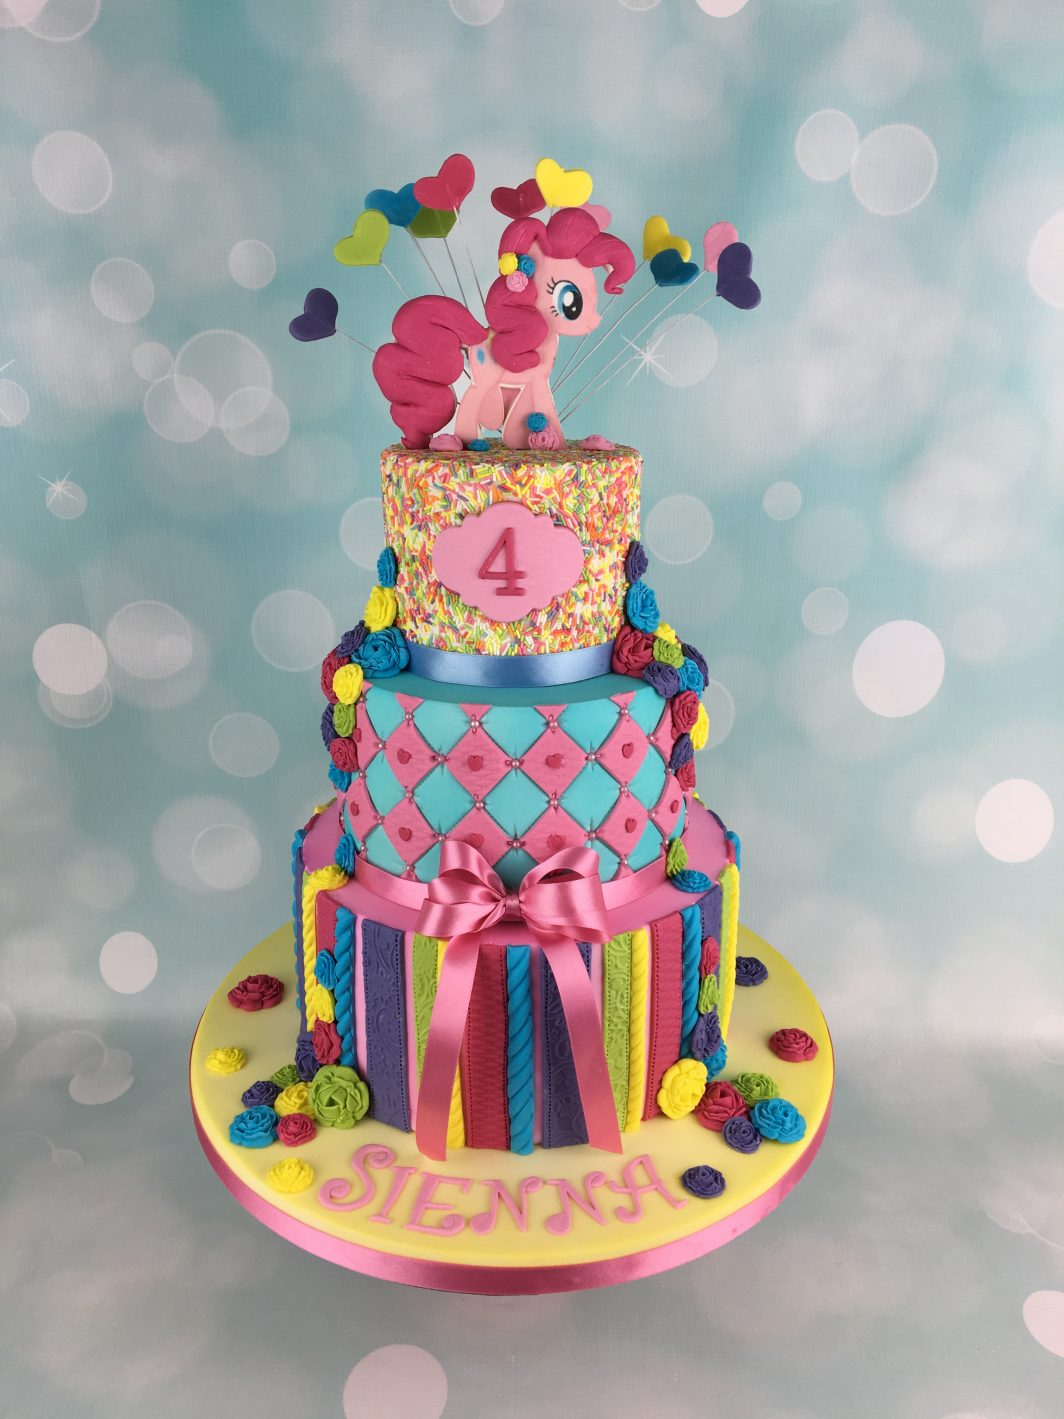 3 Tier Birthday Cake Archives Mels Amazing Cakes